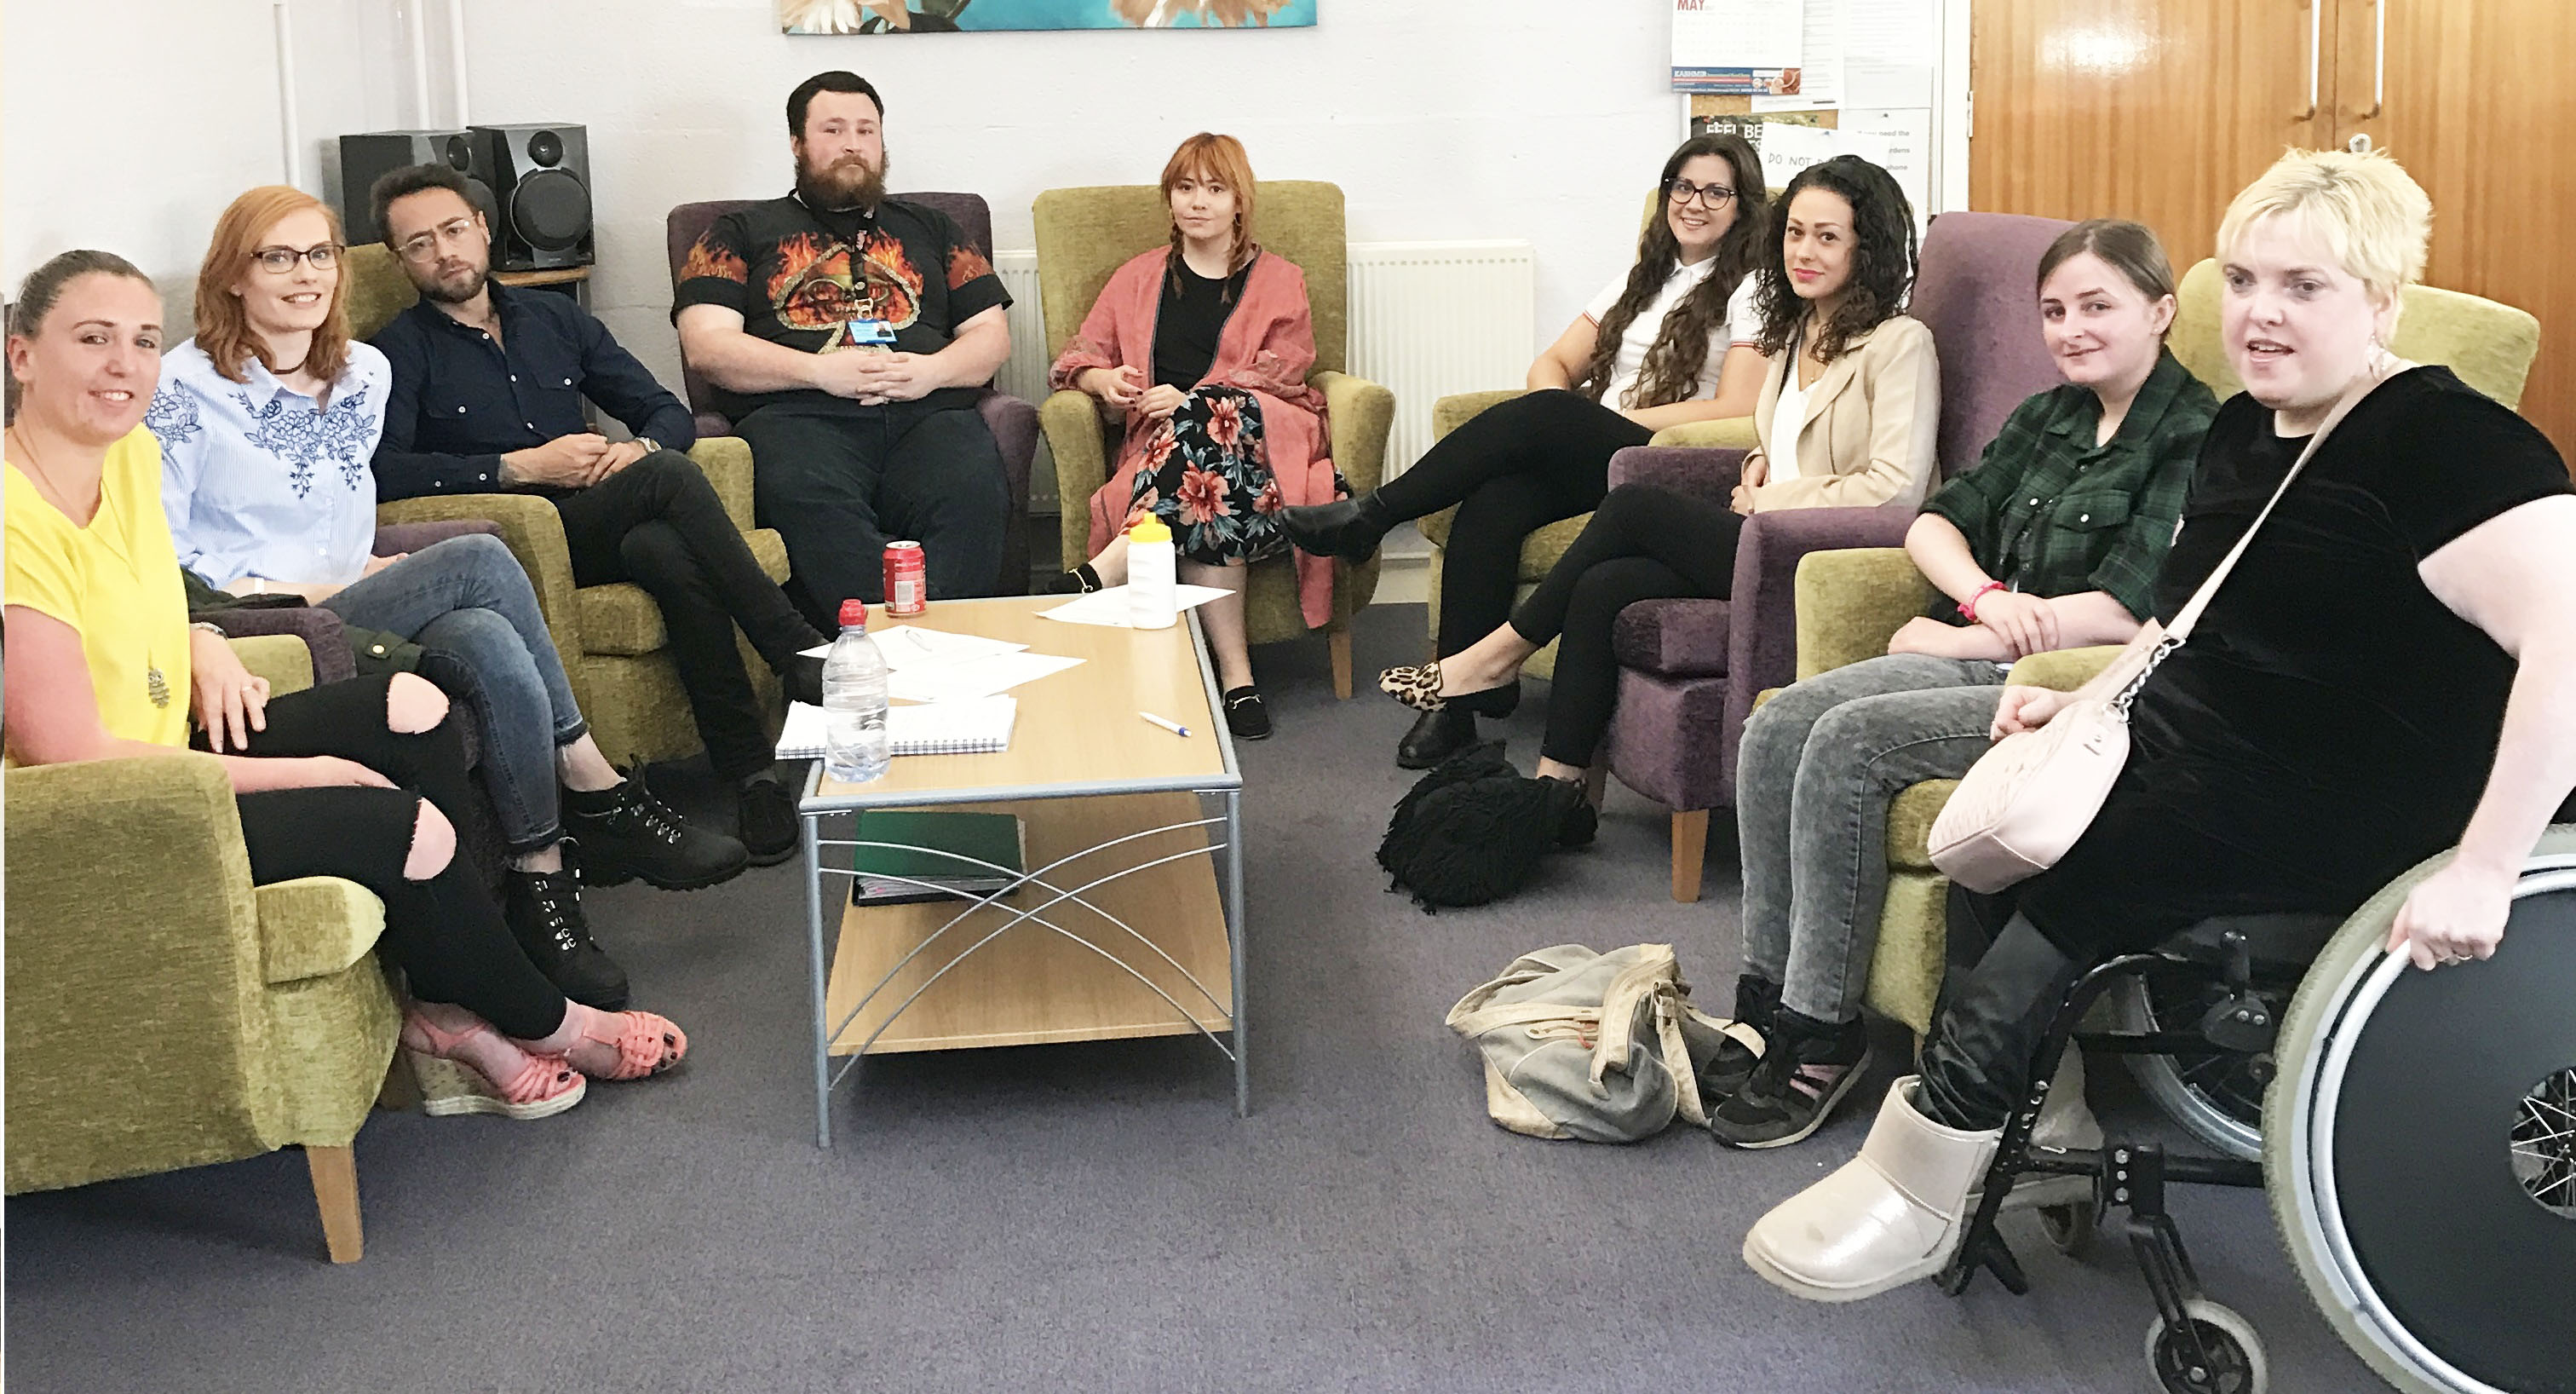 Volunteers get together to make mental health an everyday subject